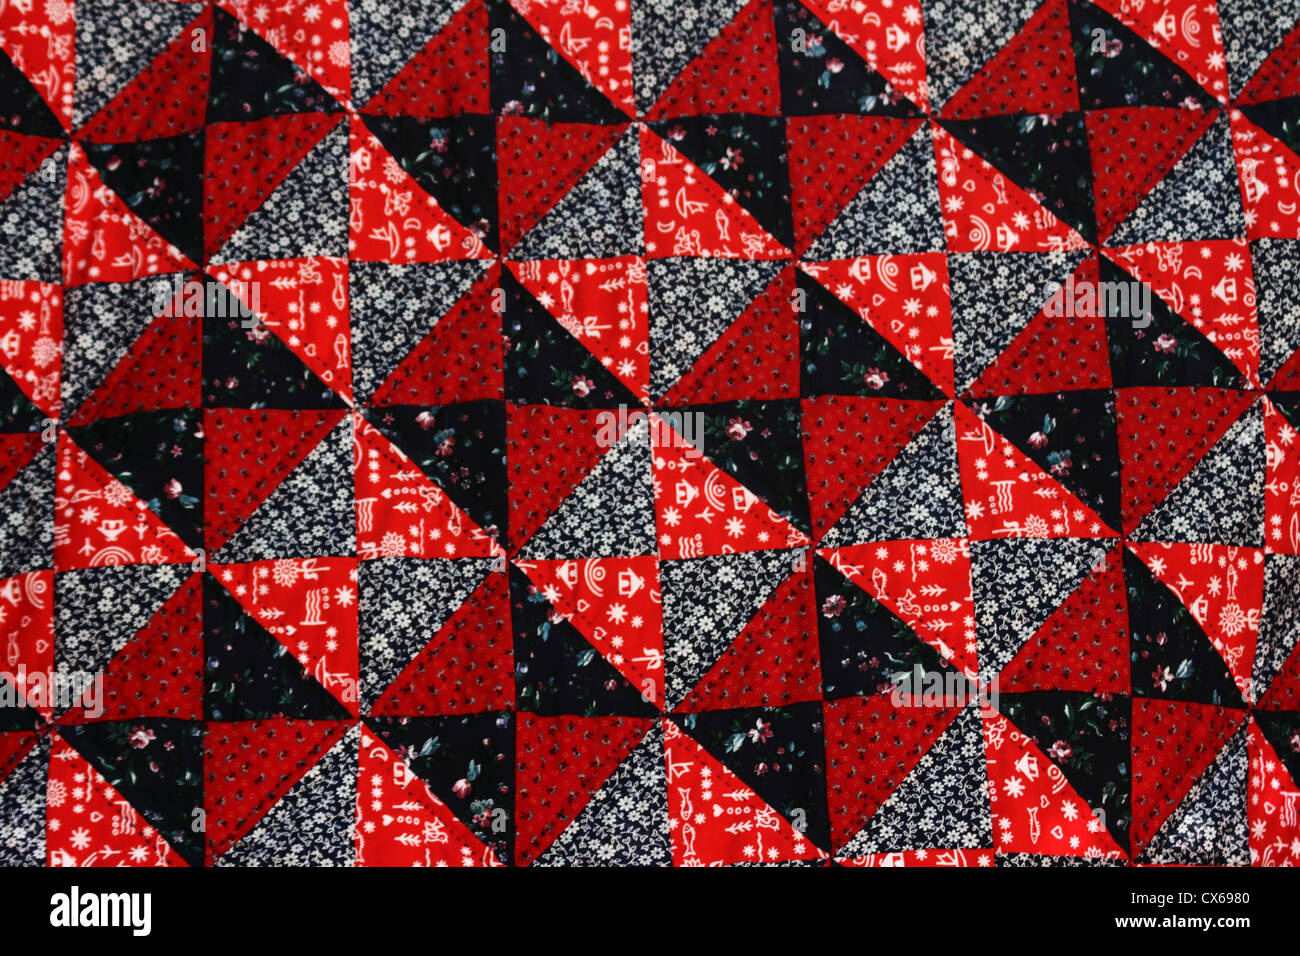 hand made crazy quilt - Stock Image